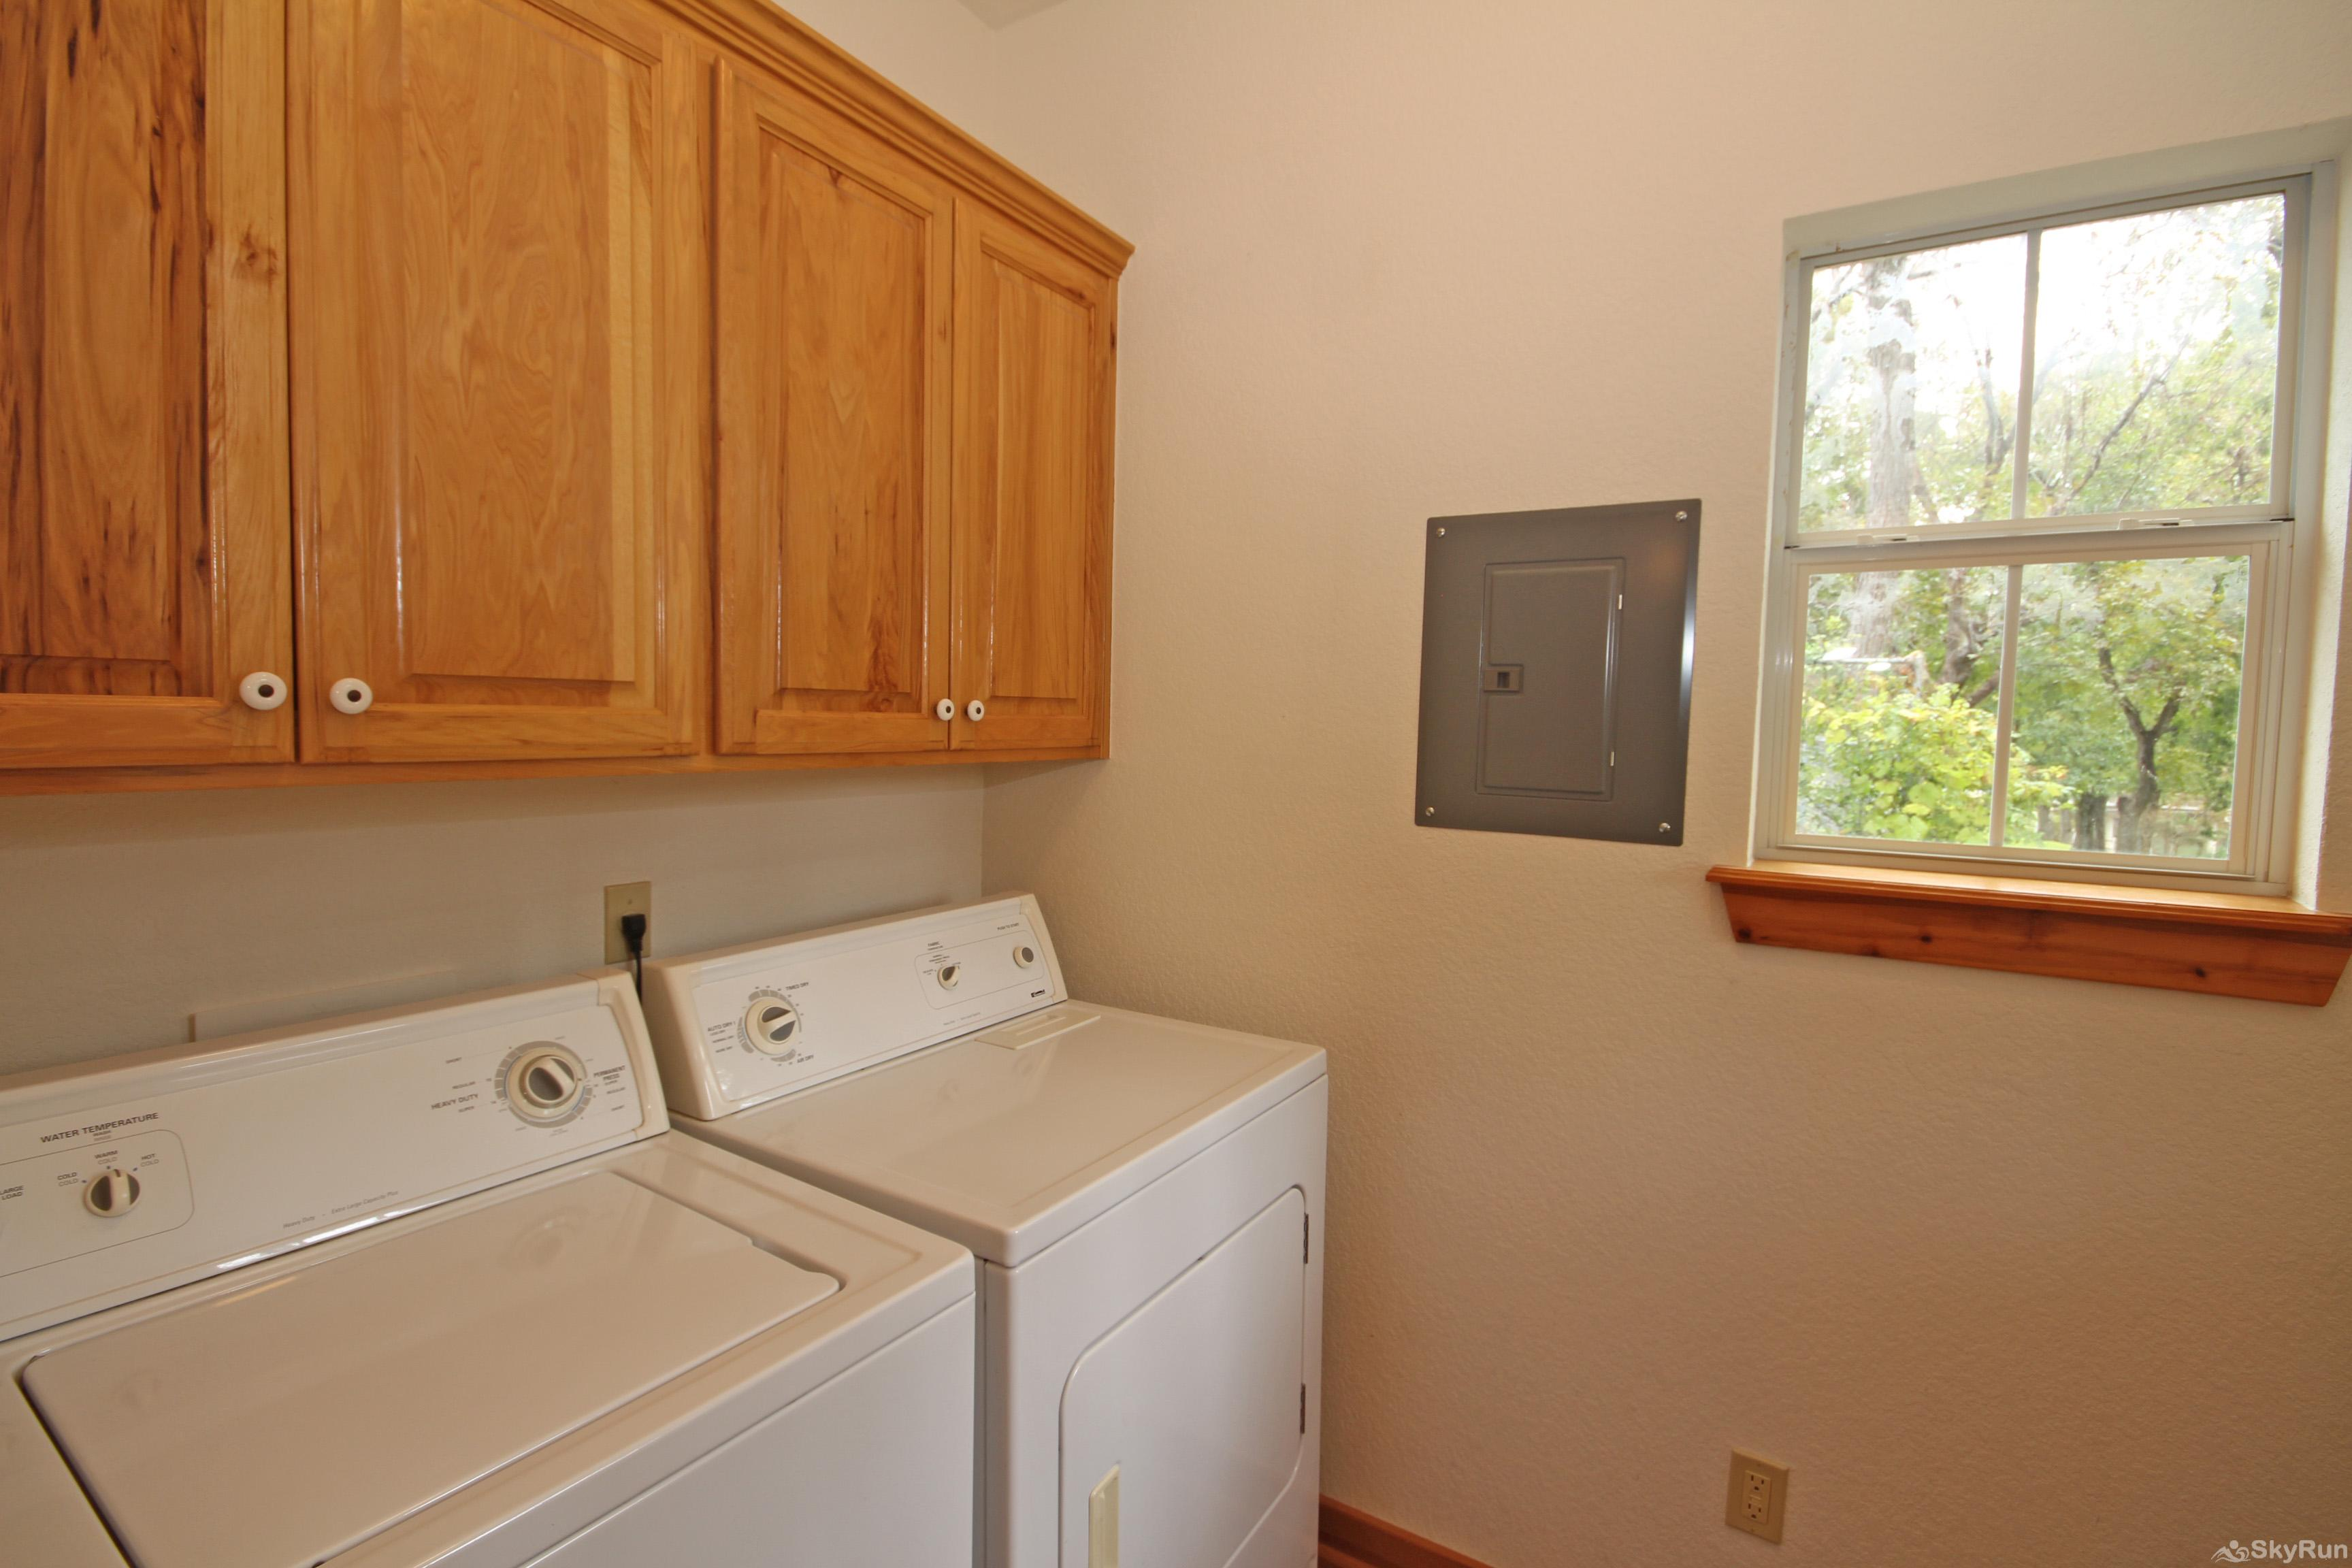 MARICOPA RIVER RESORT Washer and Dryer Available for Guest Use